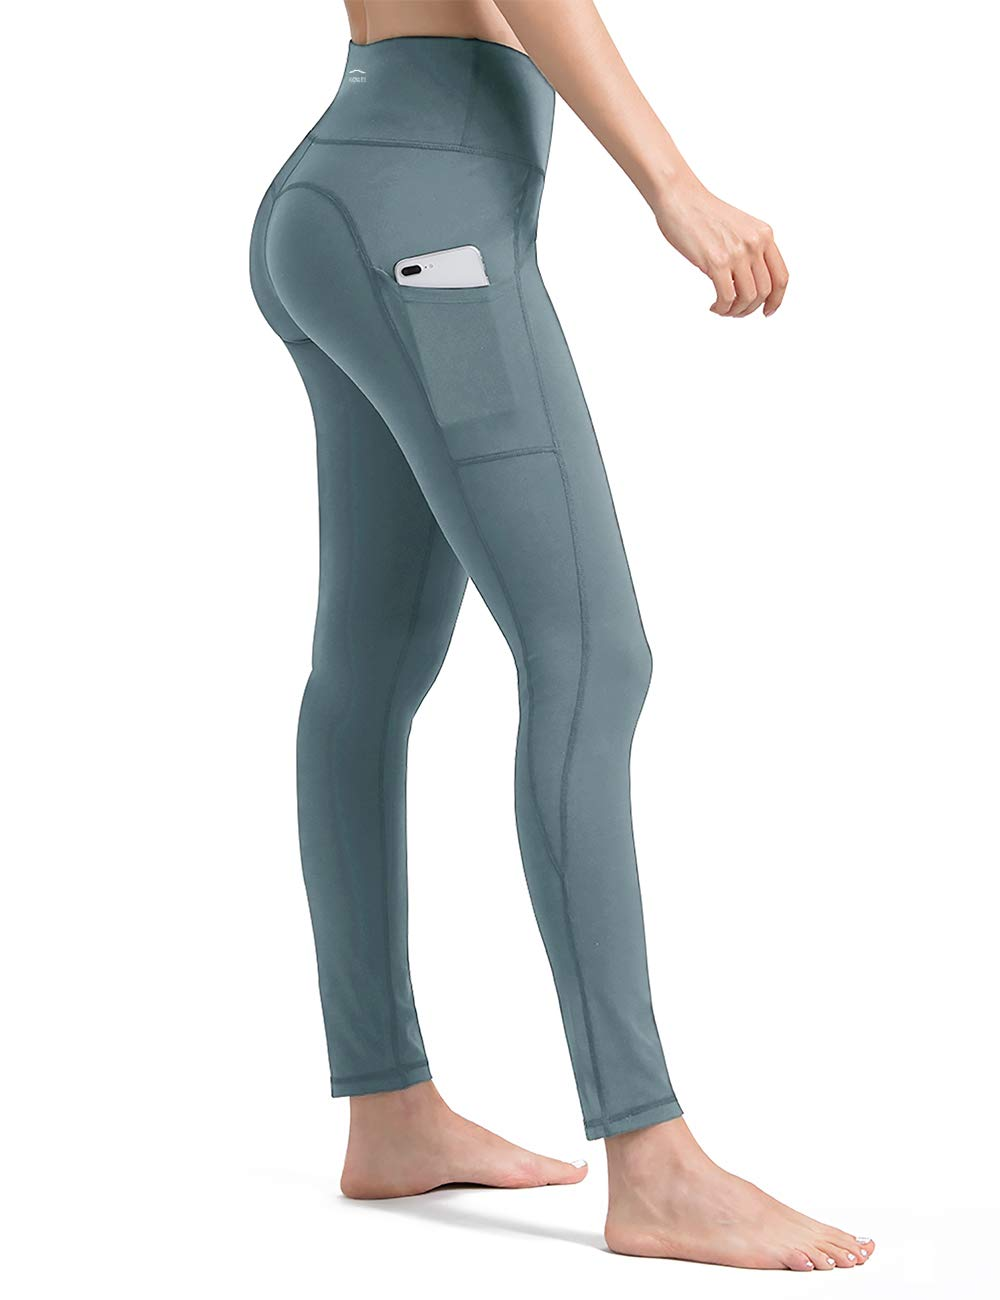 Compression Workout Leggings Tummy Control ALONG FIT Yoga Pants for Women with Pockets